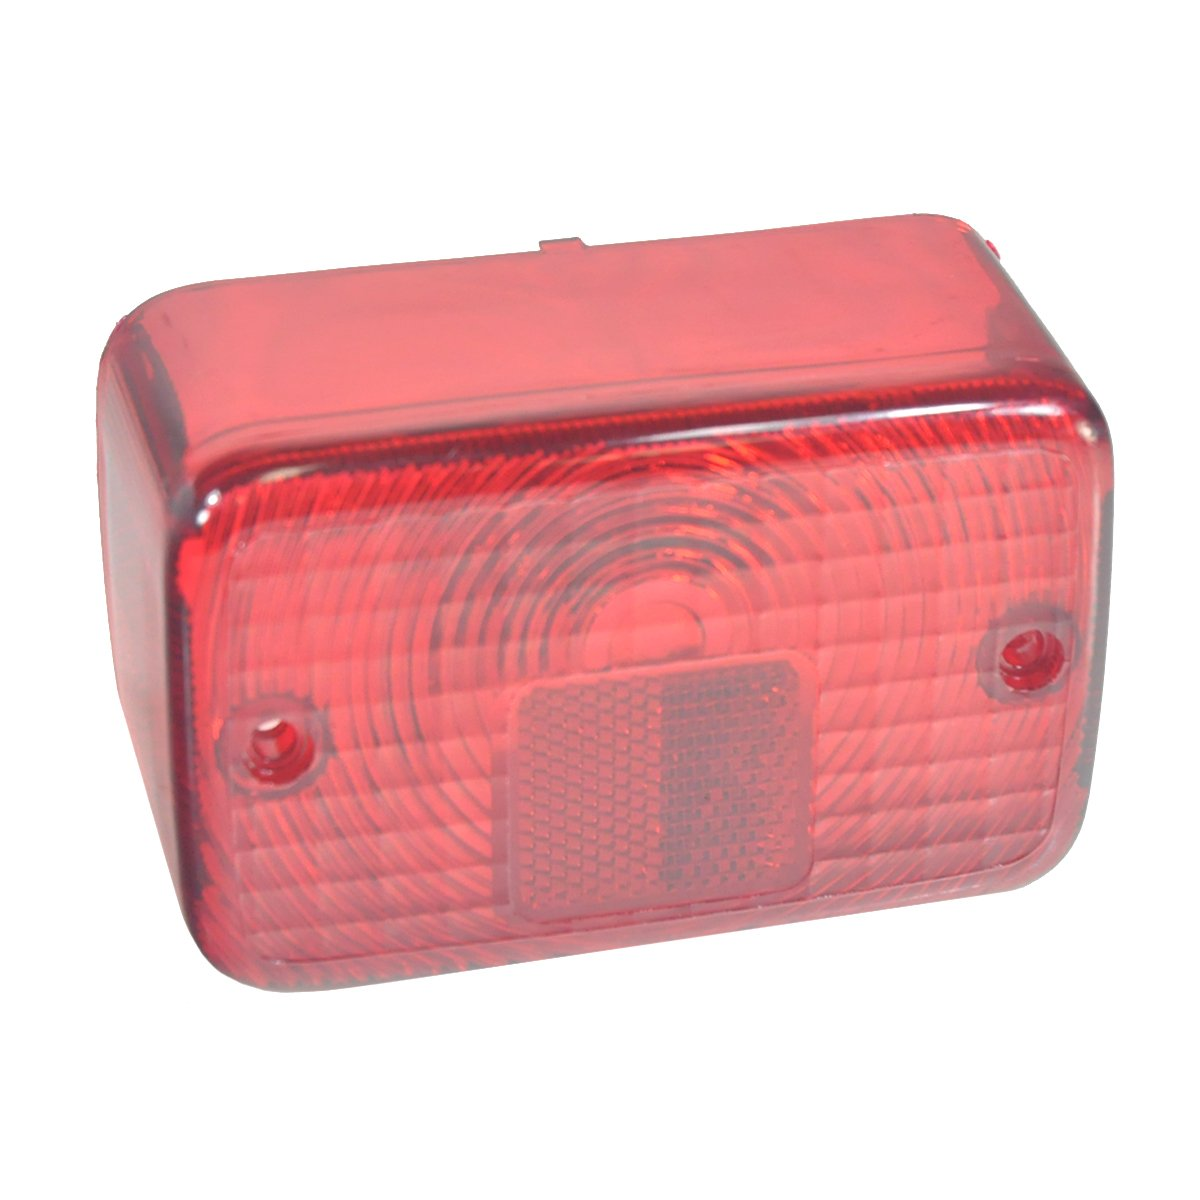 SPI, AT-01053, Taillight Lens for Yamaha ATV's Replaces OEM # 21V-84721-00-00 by SPI